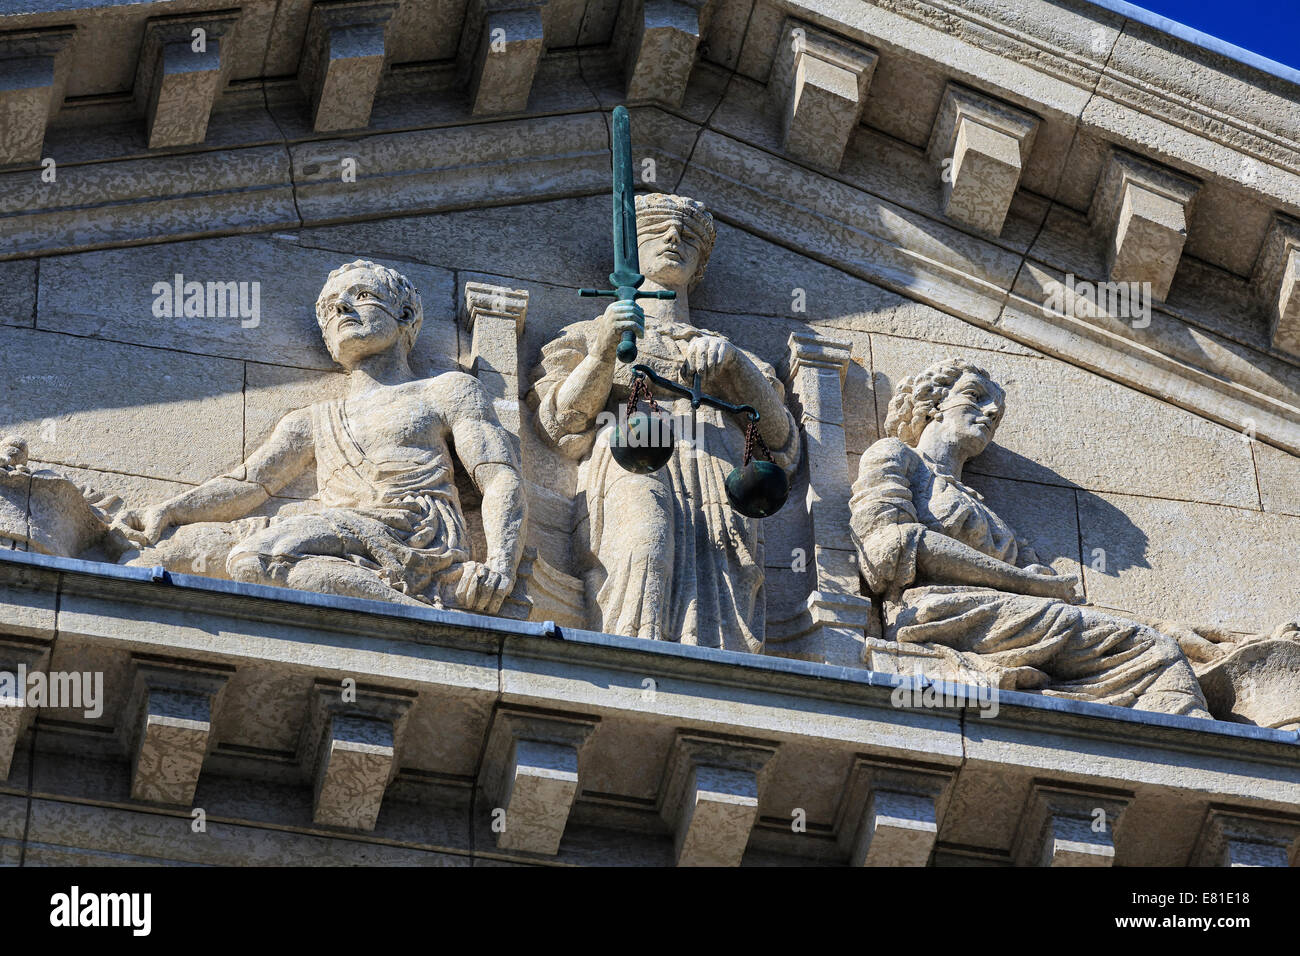 Scales of Justice carving on the Law Courts Building pediment, Winnipeg, Manitoba, Canada. Stock Photo